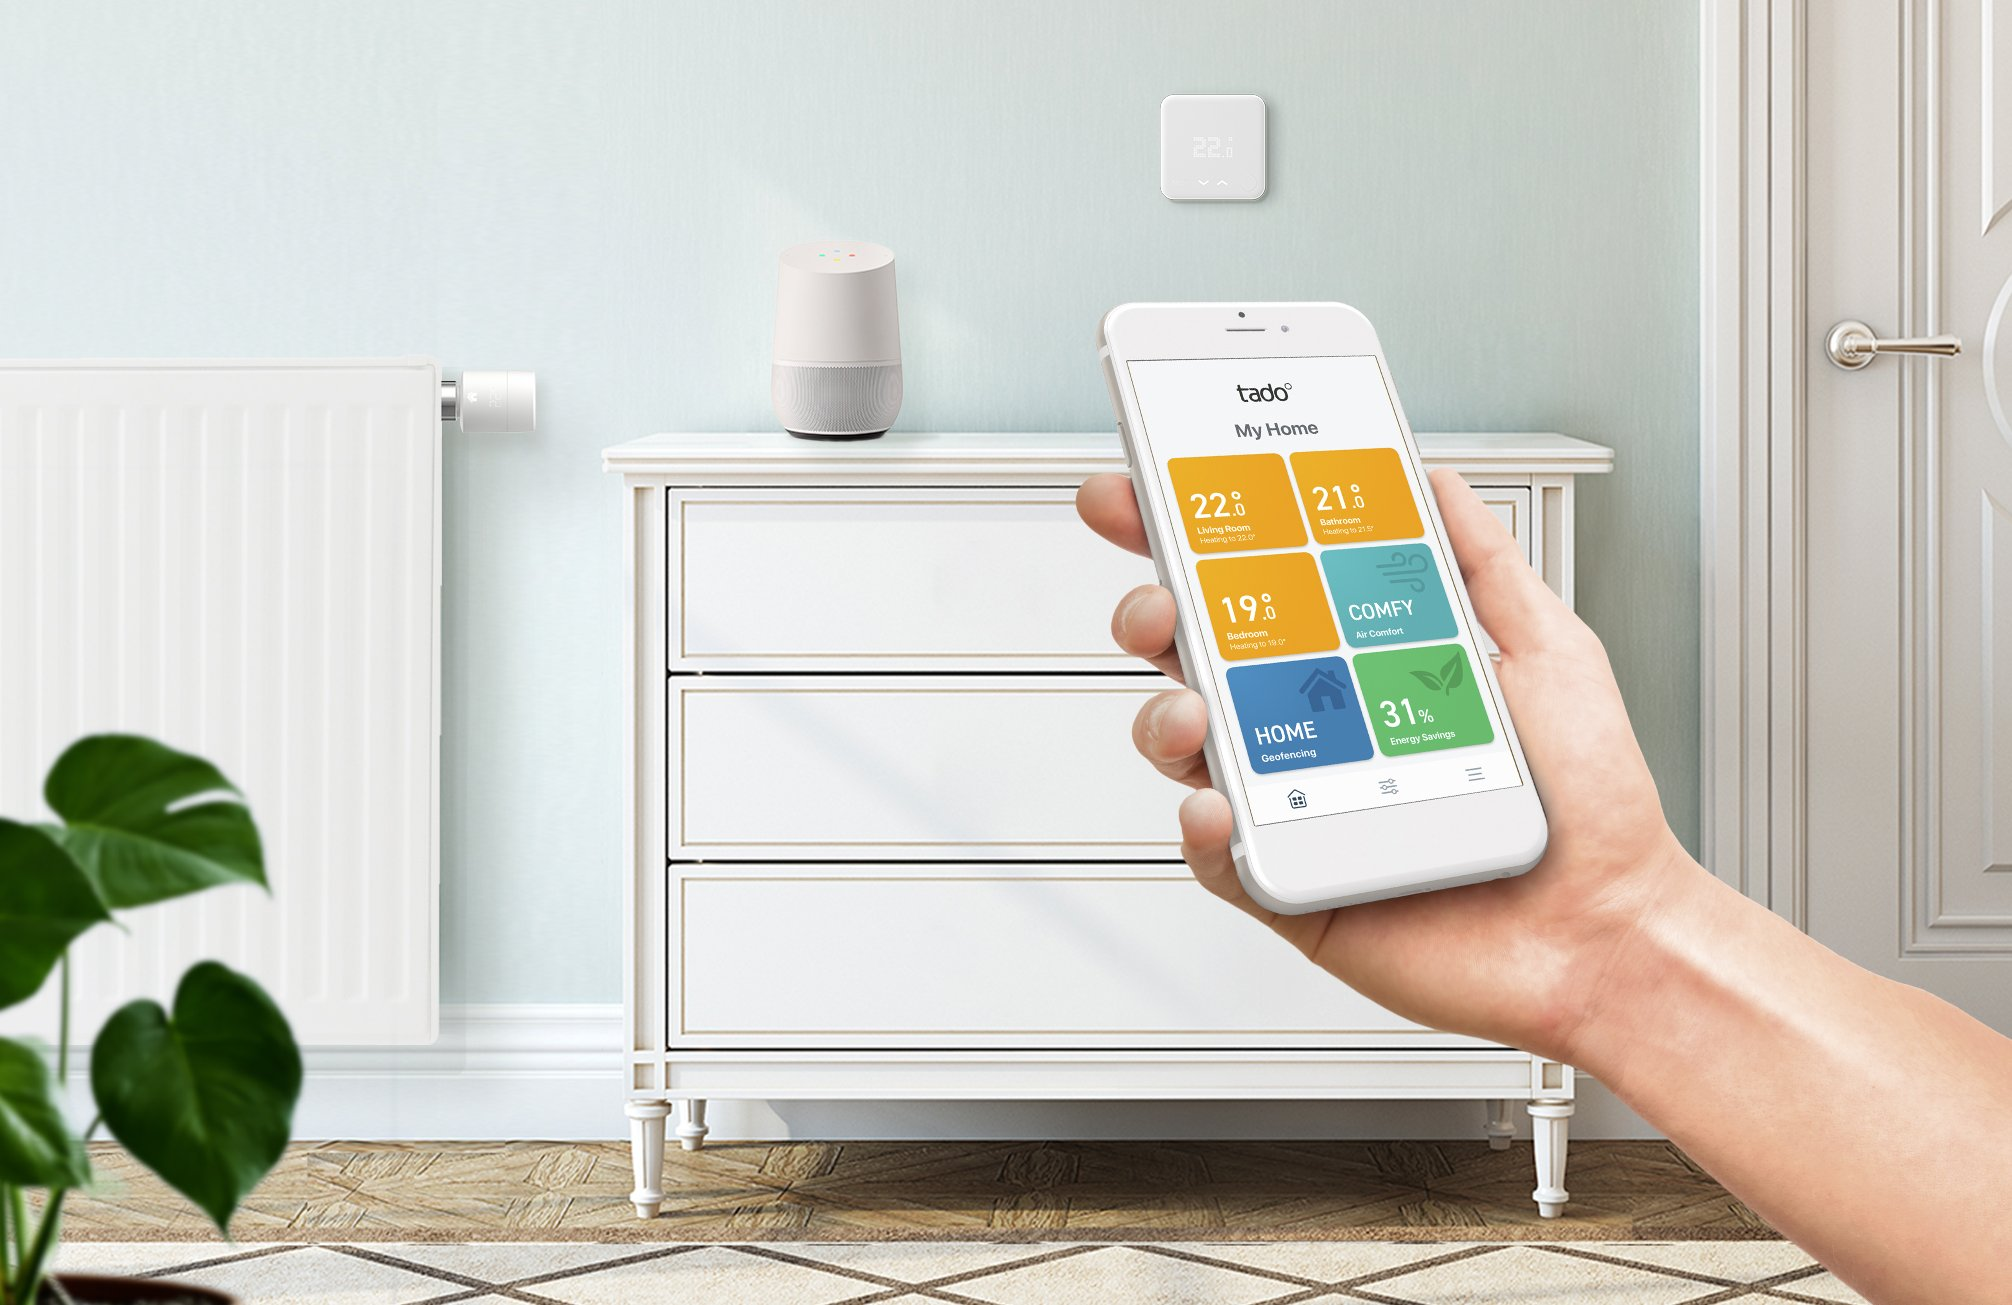 Smart Home produkter hitter også under Coronaen